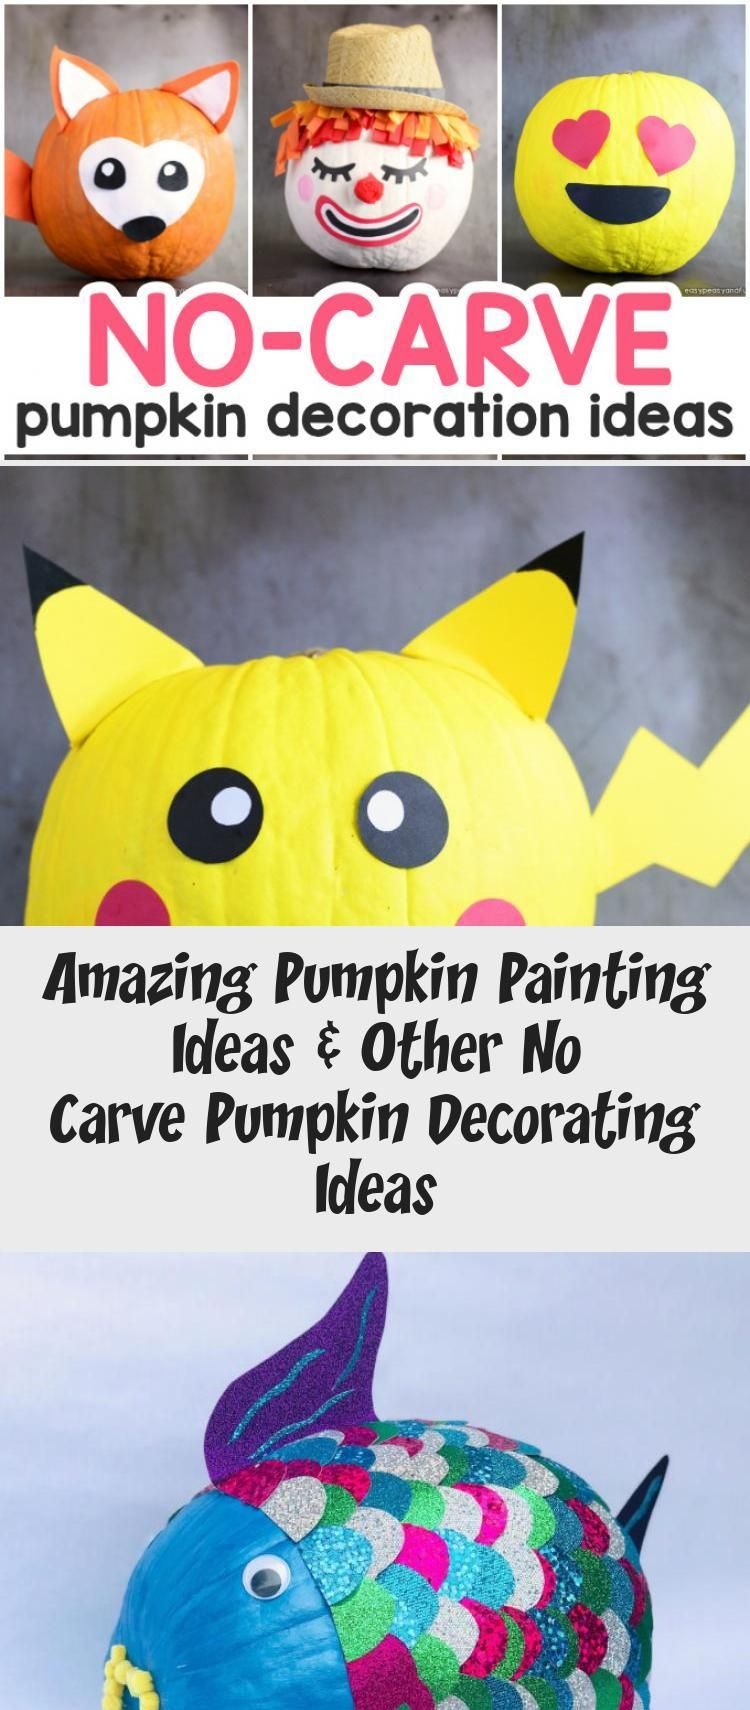 Amazing Pumpkin Painting Ideas & Other No Carve Pumpkin Decorating Ideas #paintingideasAcrylic #Smallpaintingideas #paintingideasForFurniture #paintingideasAcuarela #paintingideasAnimals #pumpkinpaintingideas